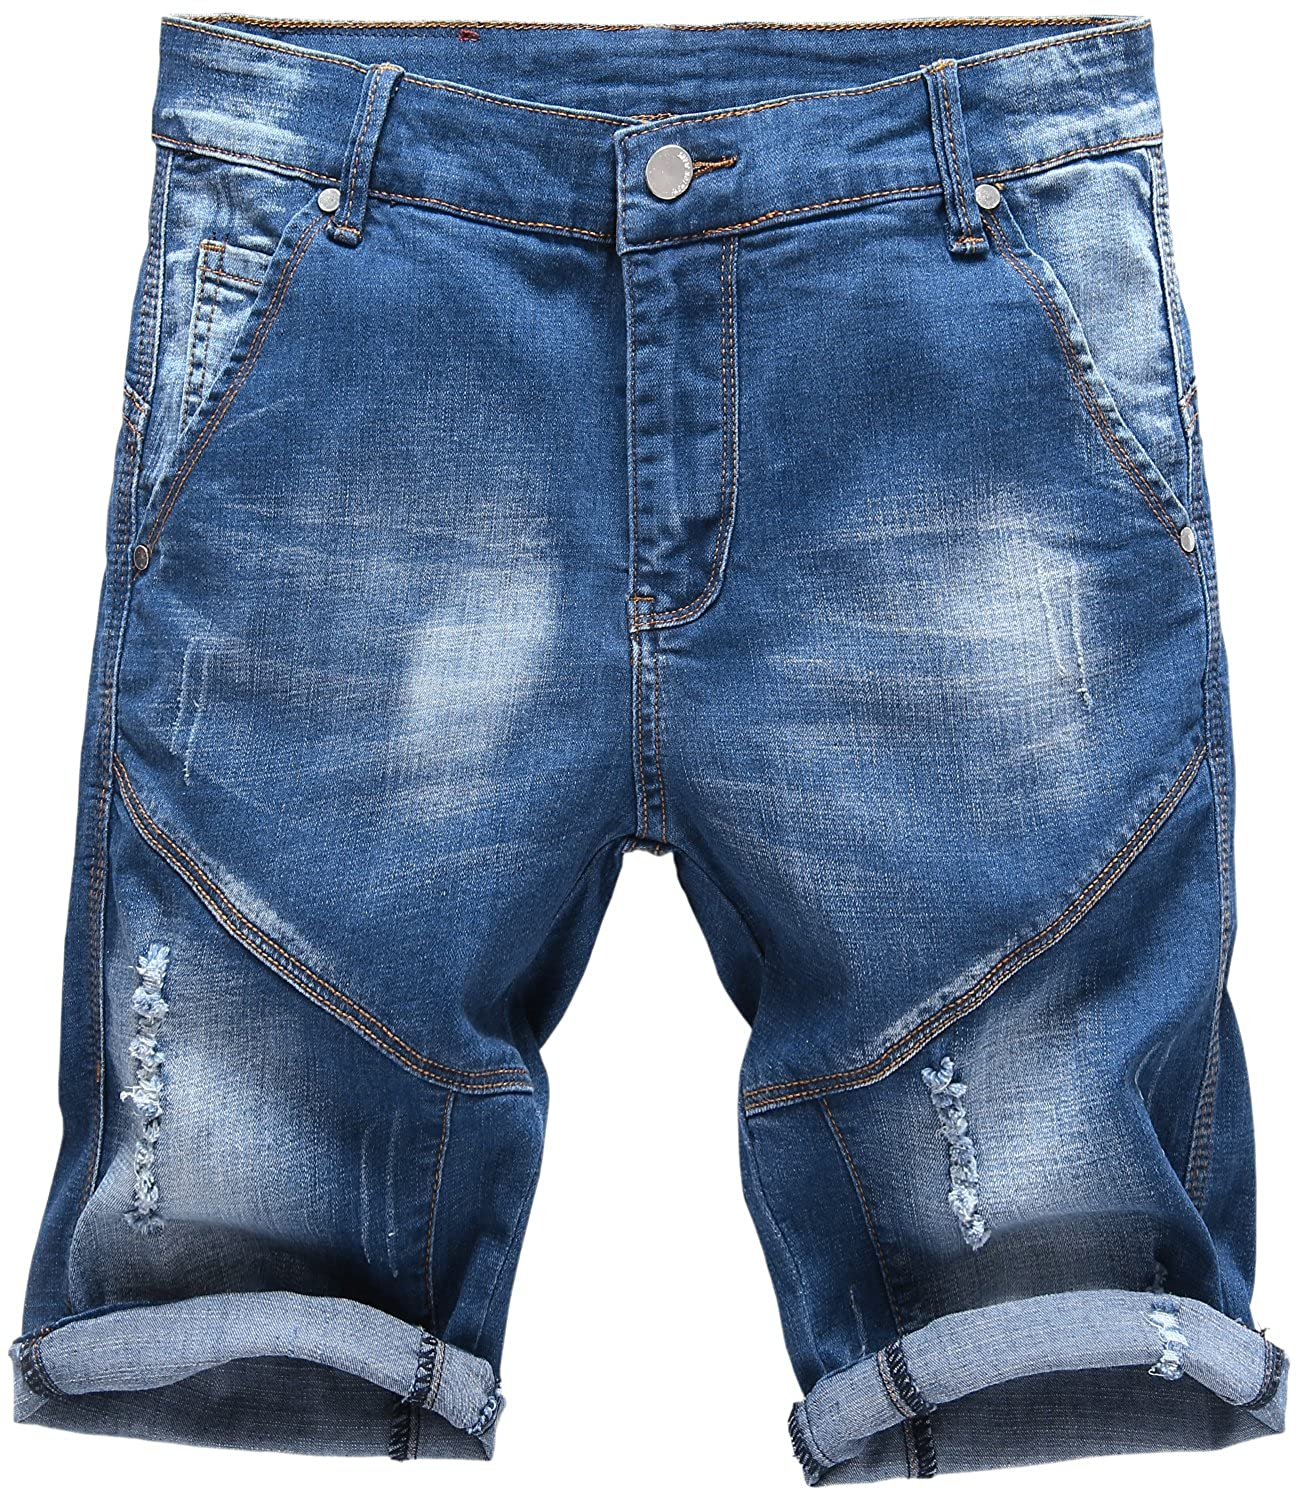 HENGAO Men's Vintage Ripped Holes Mid Rise Washed Jeans Slim Shorts